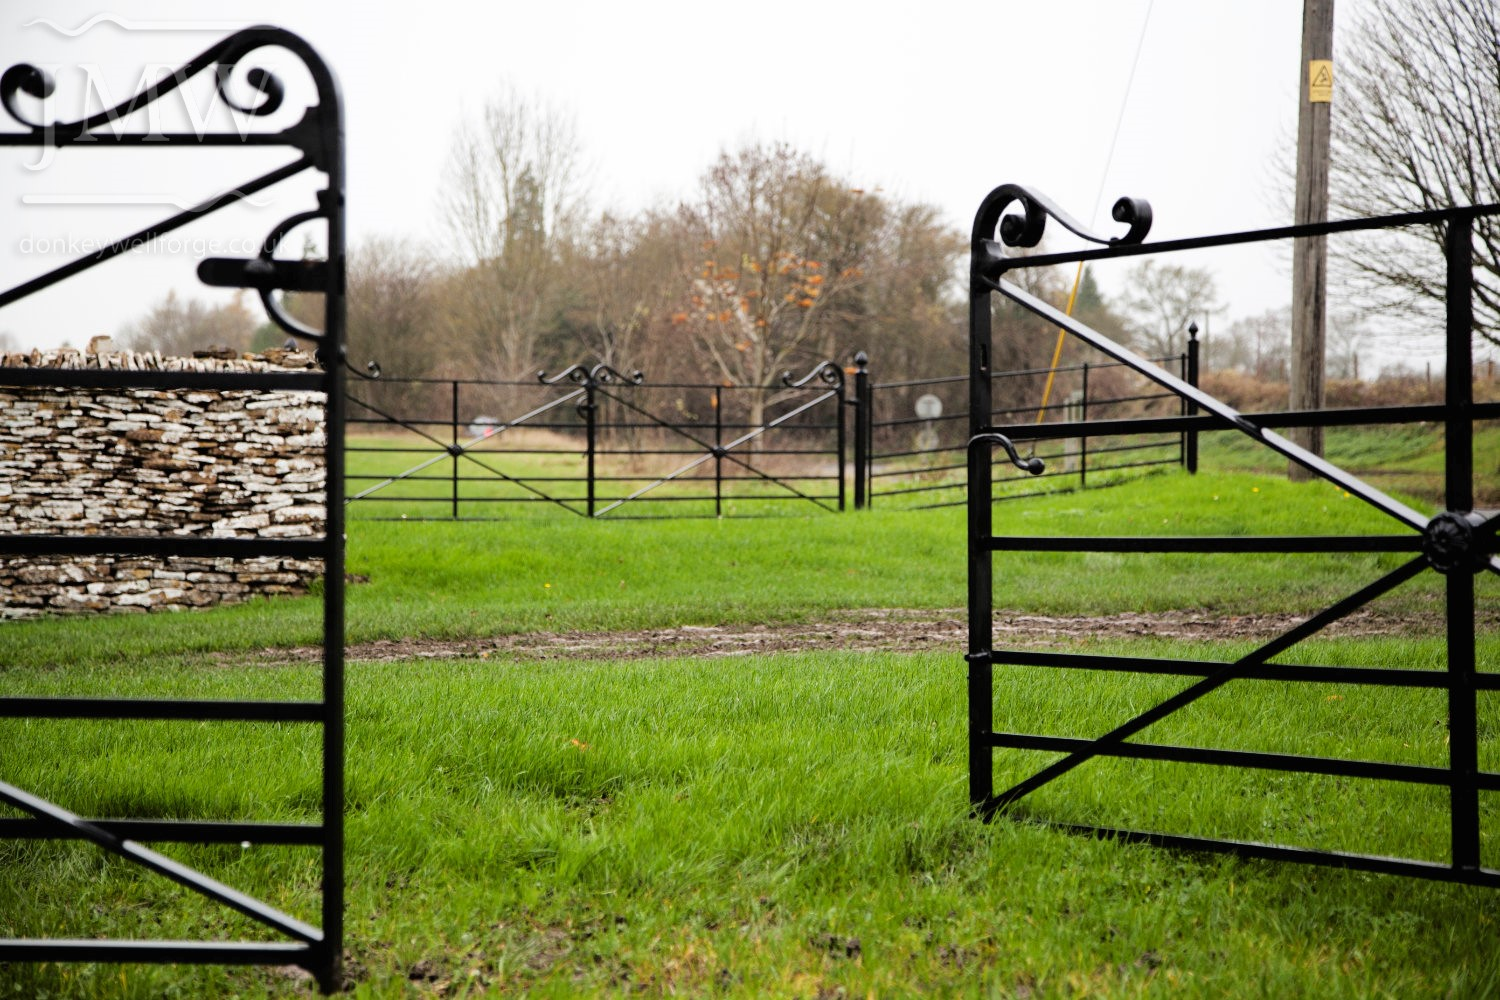 ornate-church-ironwork-gates-cotswolds-donkeywell-forge